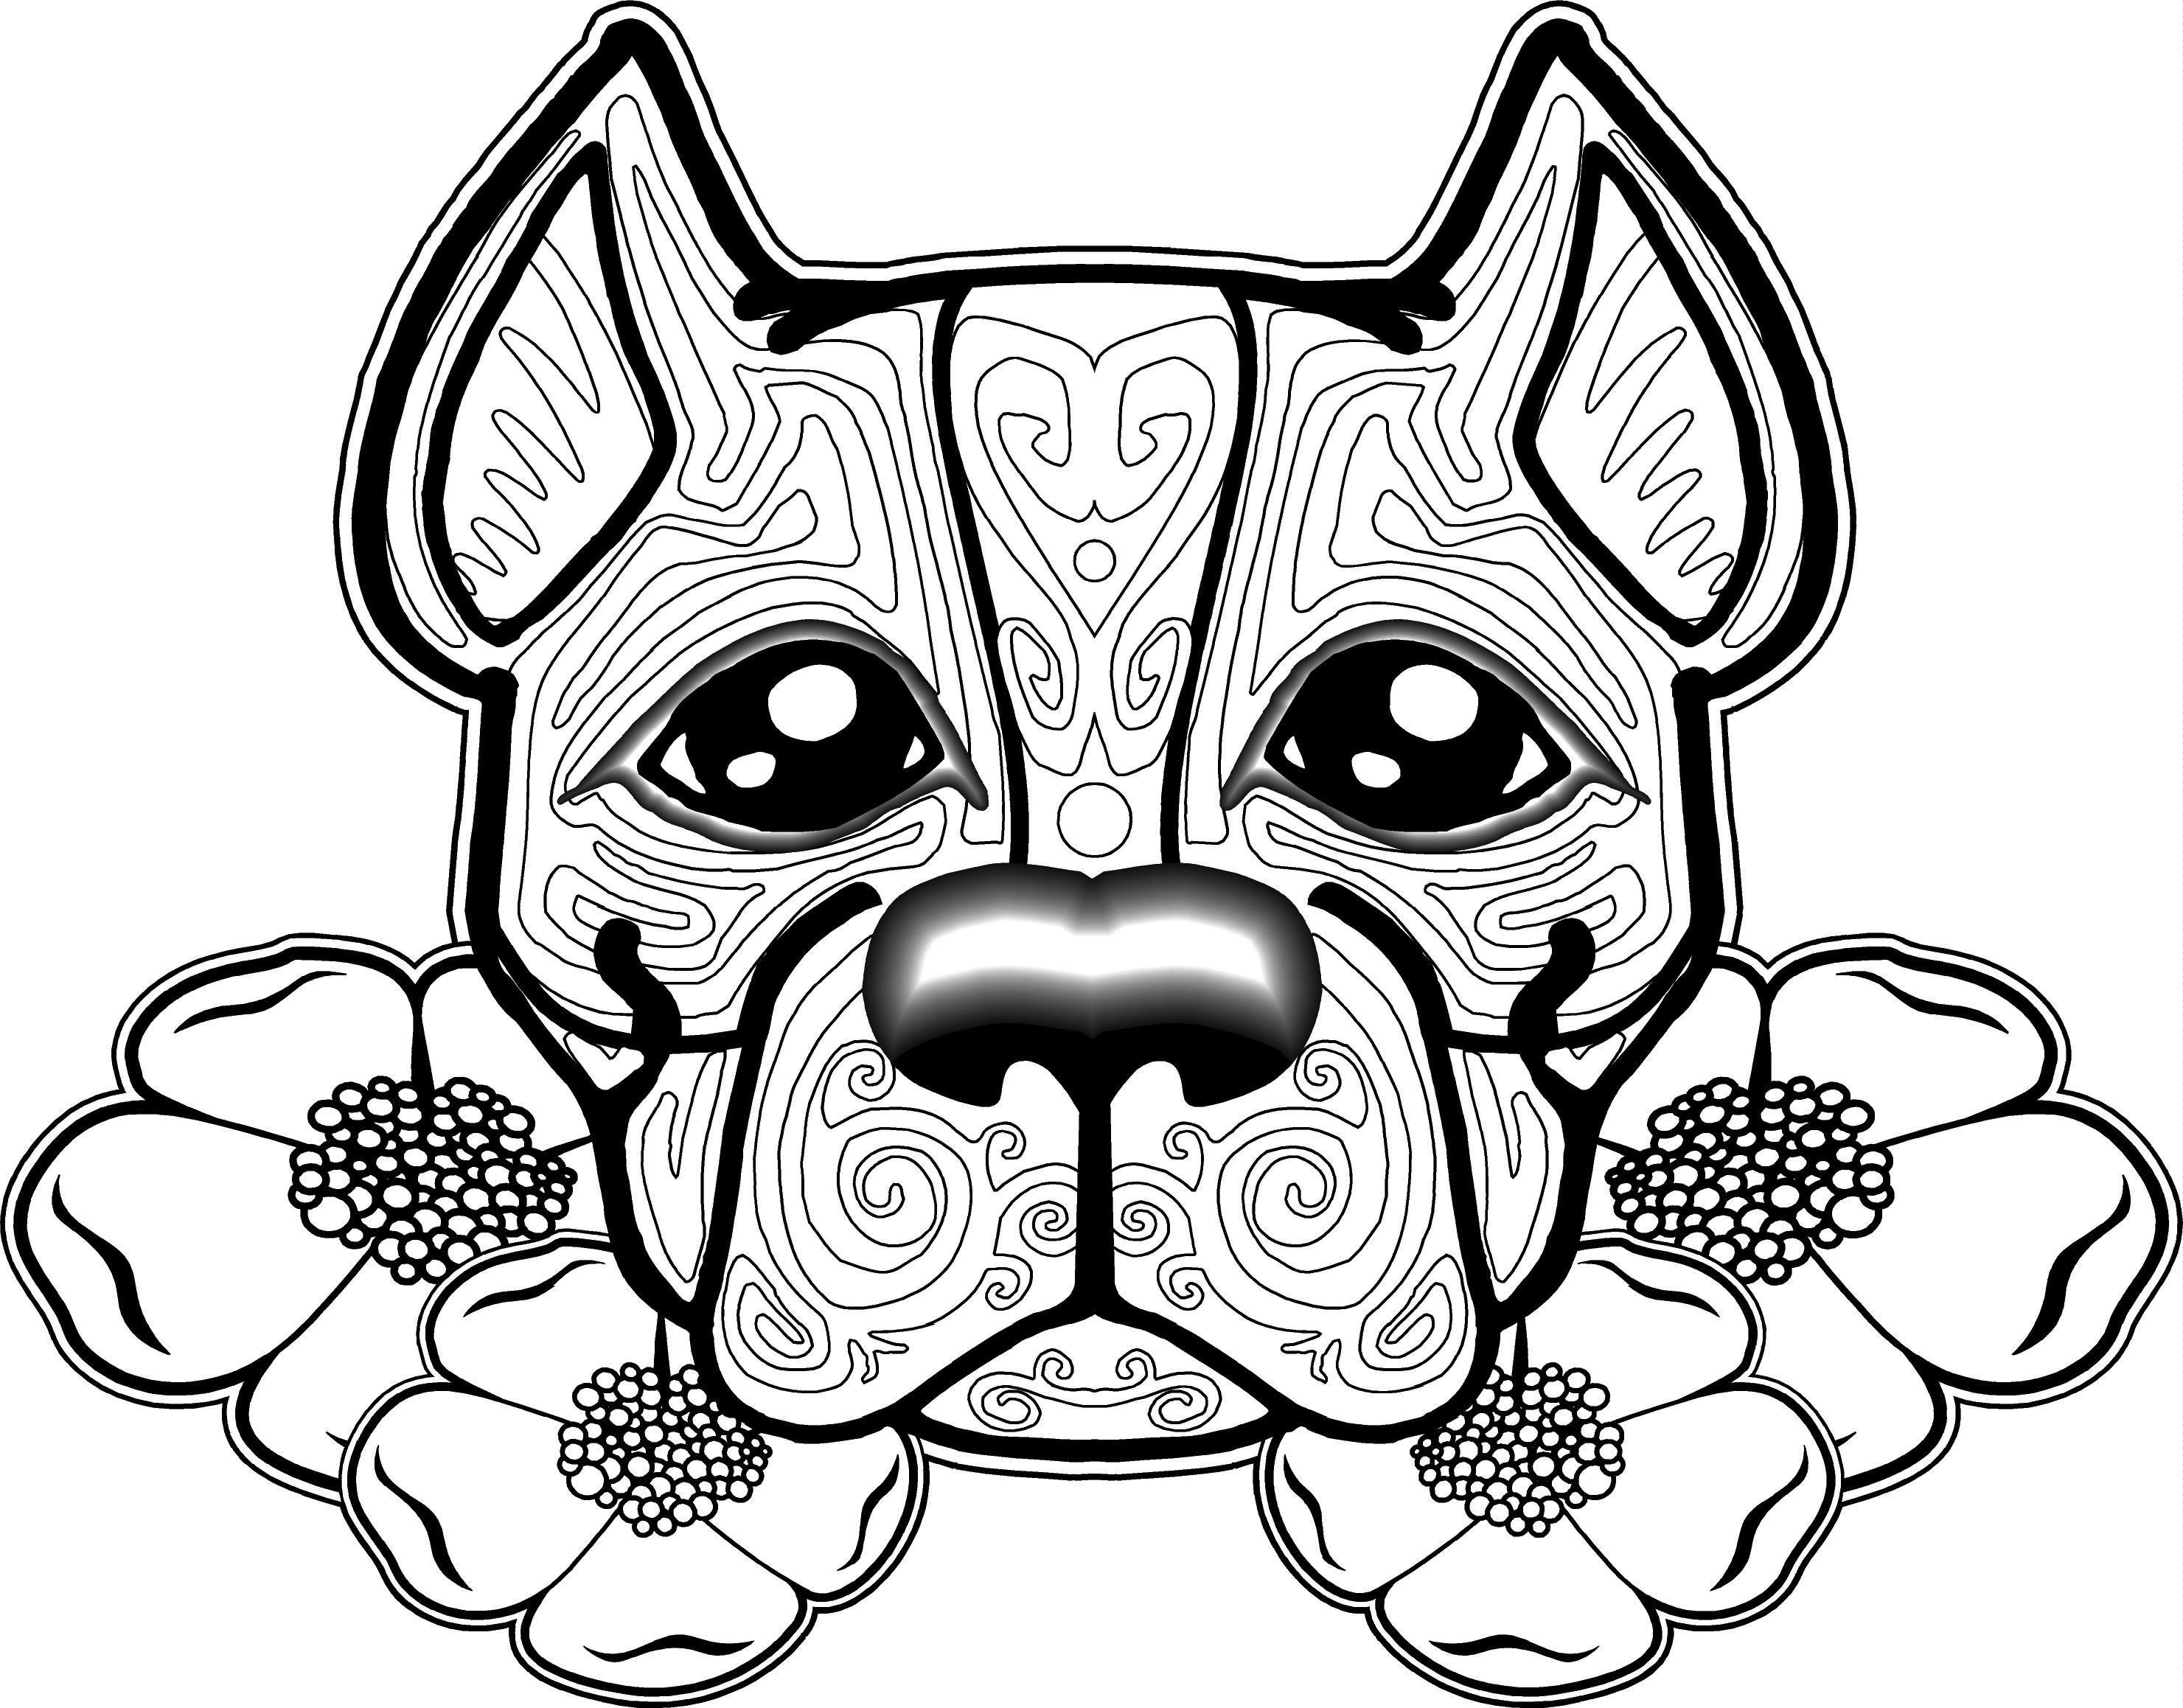 35 Coloring Pages Ghostbusters Farm Animal Coloring Pages Dog Coloring Page Dog Coloring Book [ 2317 x 2961 Pixel ]